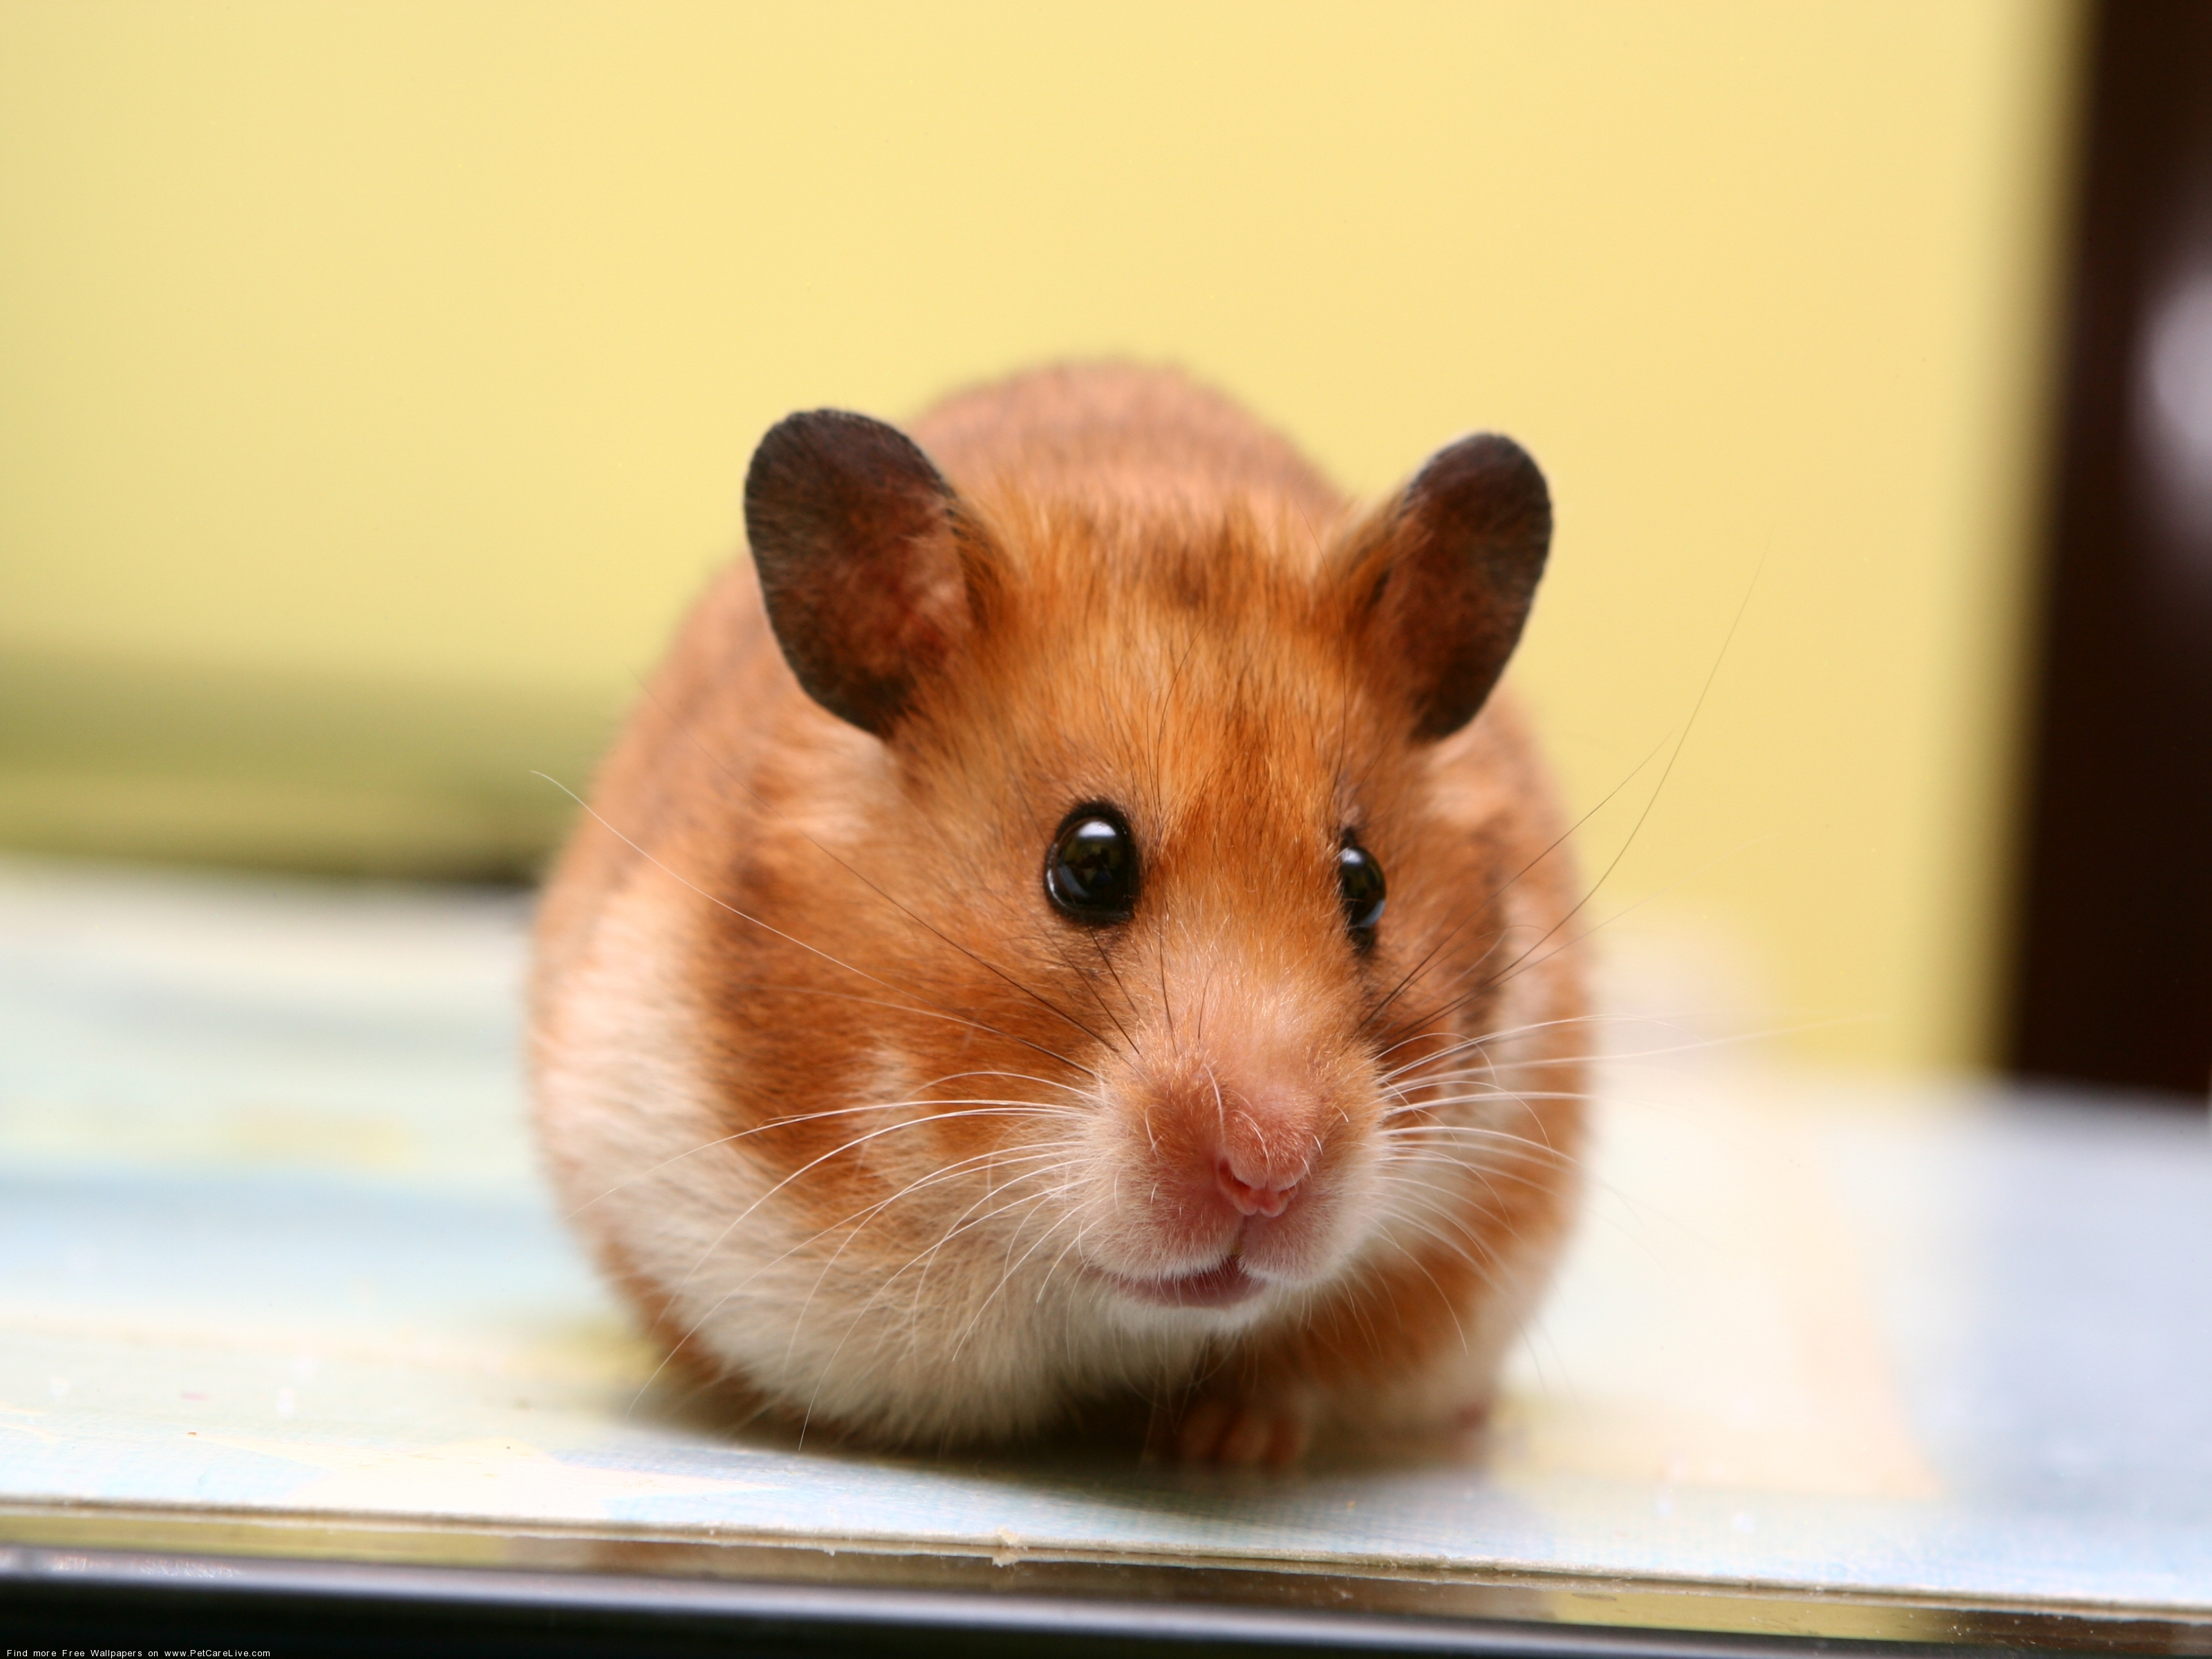 96598 download wallpaper Animals, Hamster, Eared, Muzzle, Kid, Tot, Rodent screensavers and pictures for free